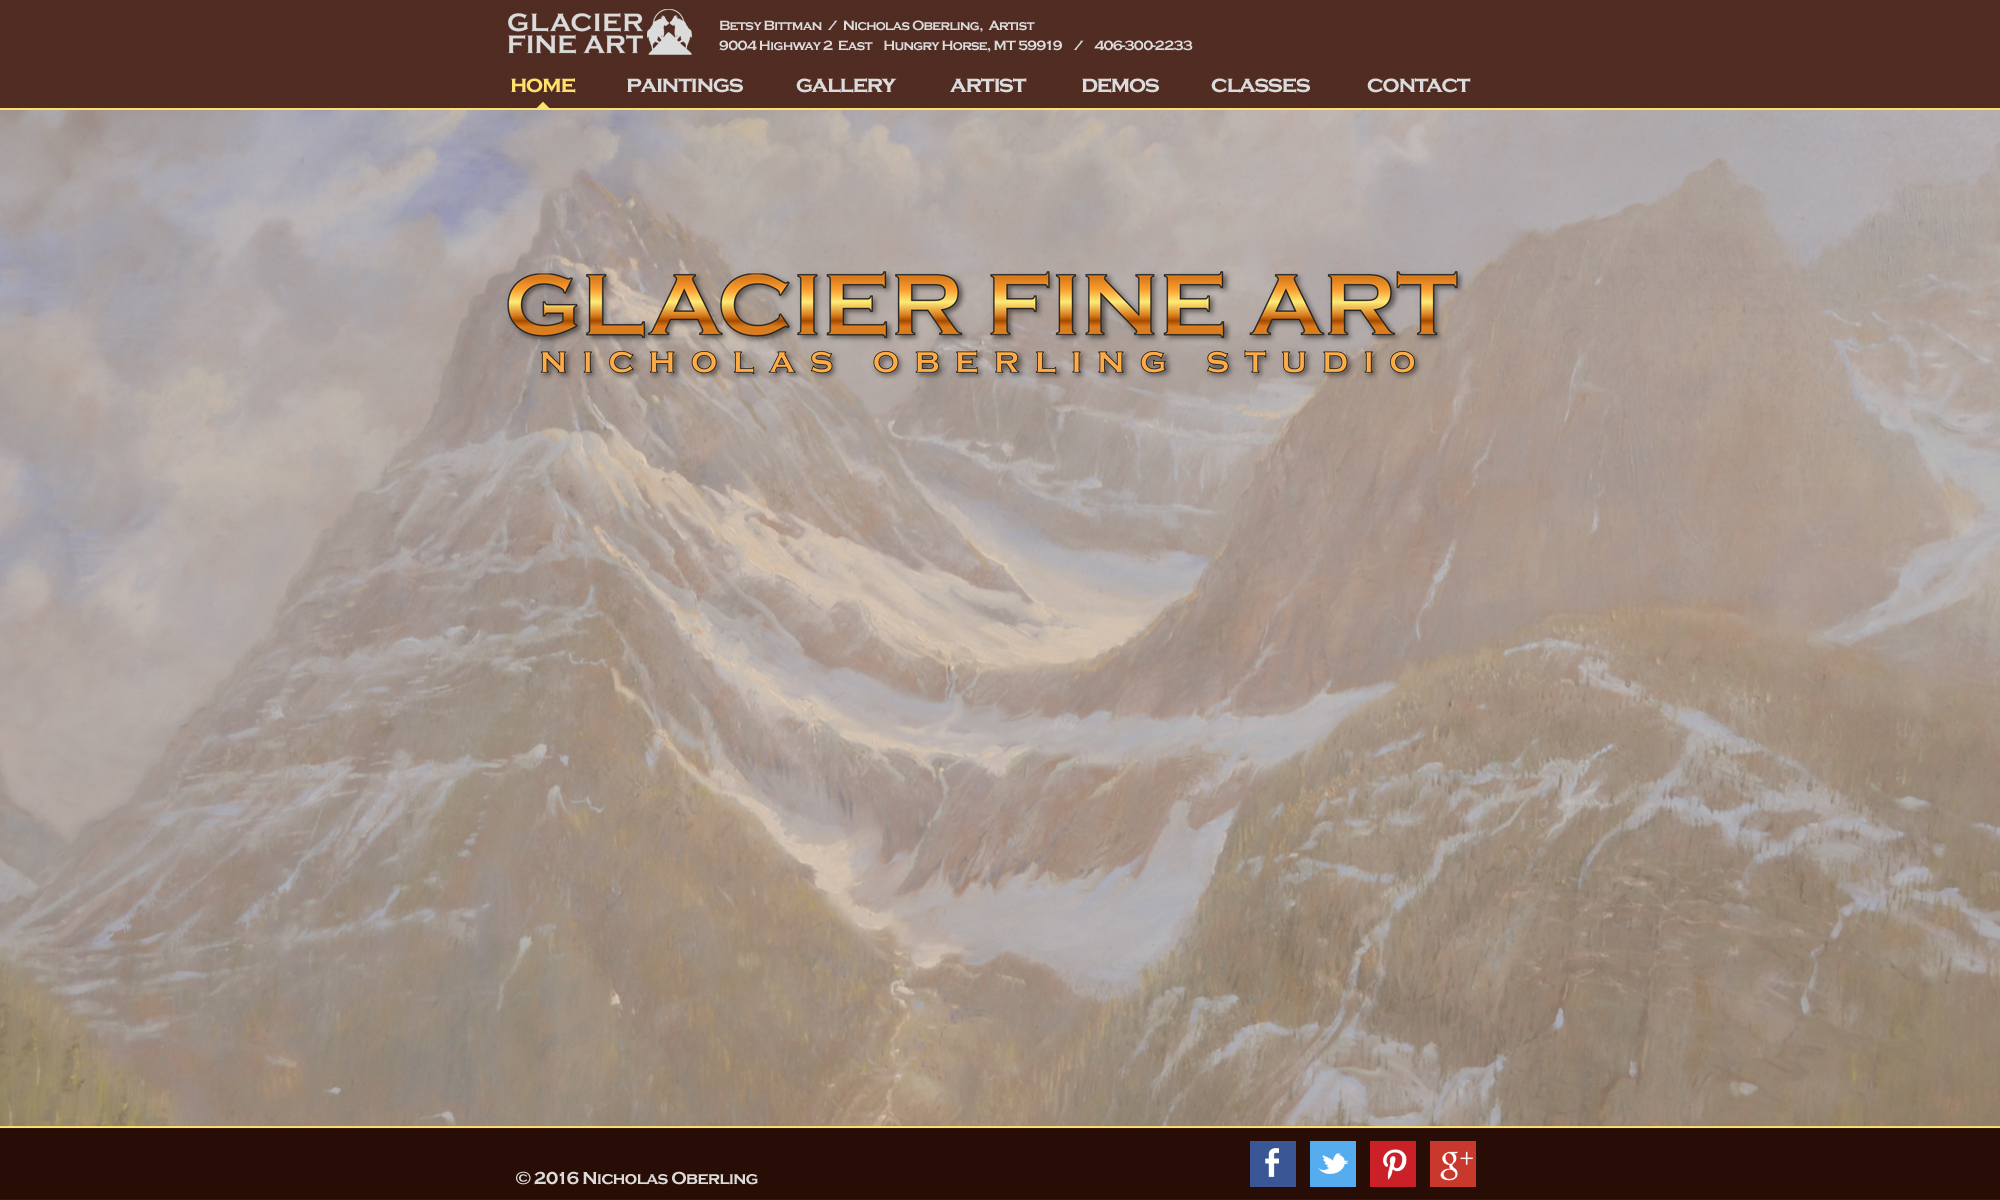 website design image painting of mountains